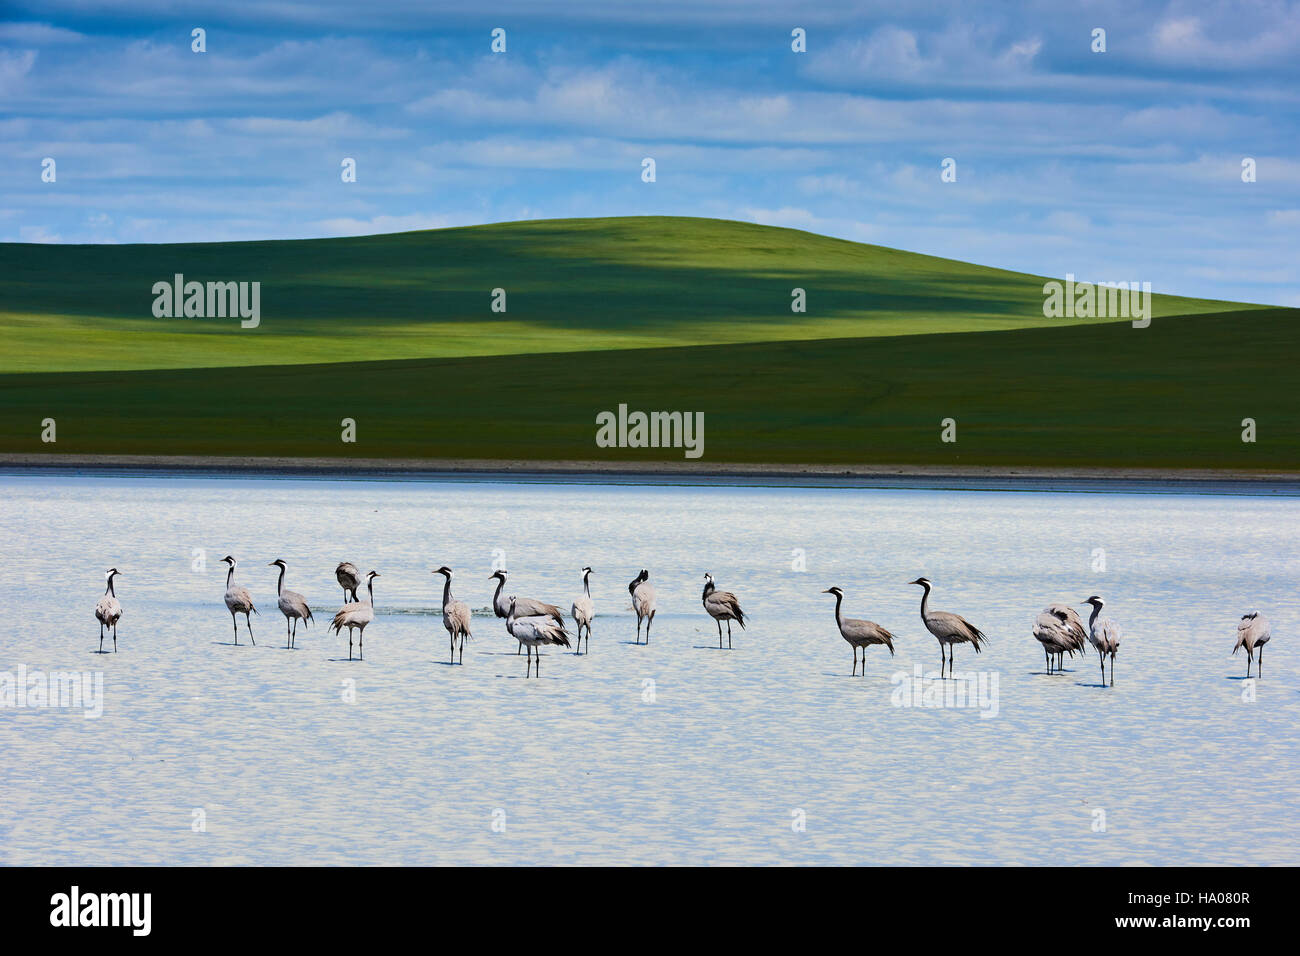 Mongolia, Khentii province, a groupe of cranes at the white lake Stock Photo